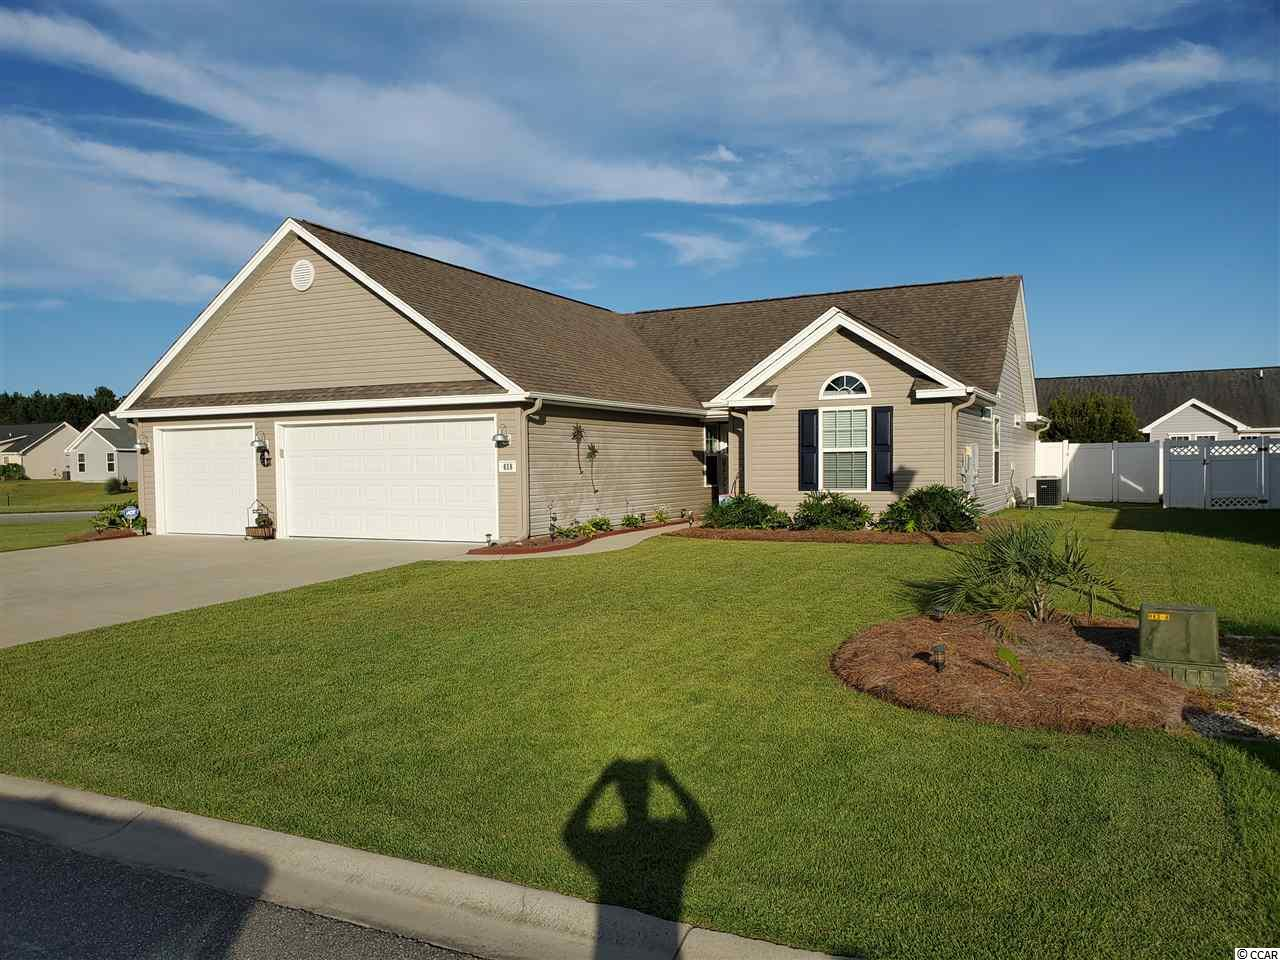 """Are you looking for extraordinary, stunning, one of a kind?  As the name implies, 618 Leprechaun Lane, Murrells Inlet is magical.  Built in 2011 and remodeled in 2018 with all the care and thoughtfulness of comfort and pleasure.  On the outside, a 3 car garage with the potential for a full kitchen and playroom (man cave) in mind. Or just ample parking for you and your guests. The walk in closet and luxurious shower in the master suite combined with the upgraded kitchen amenities and cabinet space add character to the home.  Tile in the main areas, with both vaulted ceilings and fans, with carpet in the bedrooms for warmth.  A kitchen dining room set up with an extra dining area for all occasions.  Cabinetry and appliances are upgraded as are all the plumbing fixtures, all of which are elegant and modern.  The Carolina room has a """"barn-door"""" enclosure for both privacy and additional space in the living room.  For those who love the outside, a well manicured yard with rain bird irrigation system.  Do not forget that outside shower for after the beach, a plus for keeping sand out of the home. 10x10 matching storage building in back yard. Extended patio for entertaining or BBQ. Storm and screen doors along with smart technology with remote access for the garage door and Nest for smart home capabilities. Ceiling fans in every room. There is ample storage in this house and a pull down attic with a huge room above the 3 car garage. You will not see a home that is in such pristine condition. Just a few miles to the beach, and a great St. James school system, to send your kids.  The home is tucked into a quiet corner lot with a 6 ft privacy fence with room to spare.  Let us not forget the insurance costs, while you are close to the beach, you are in a """"no flood zone"""" and west of By-Pass 17 which lowers your total cost for wind insurance.  A must see for anyone looking for elegance, convenience and ease of living in a and charming neighborhood. Call today and get your slice o"""